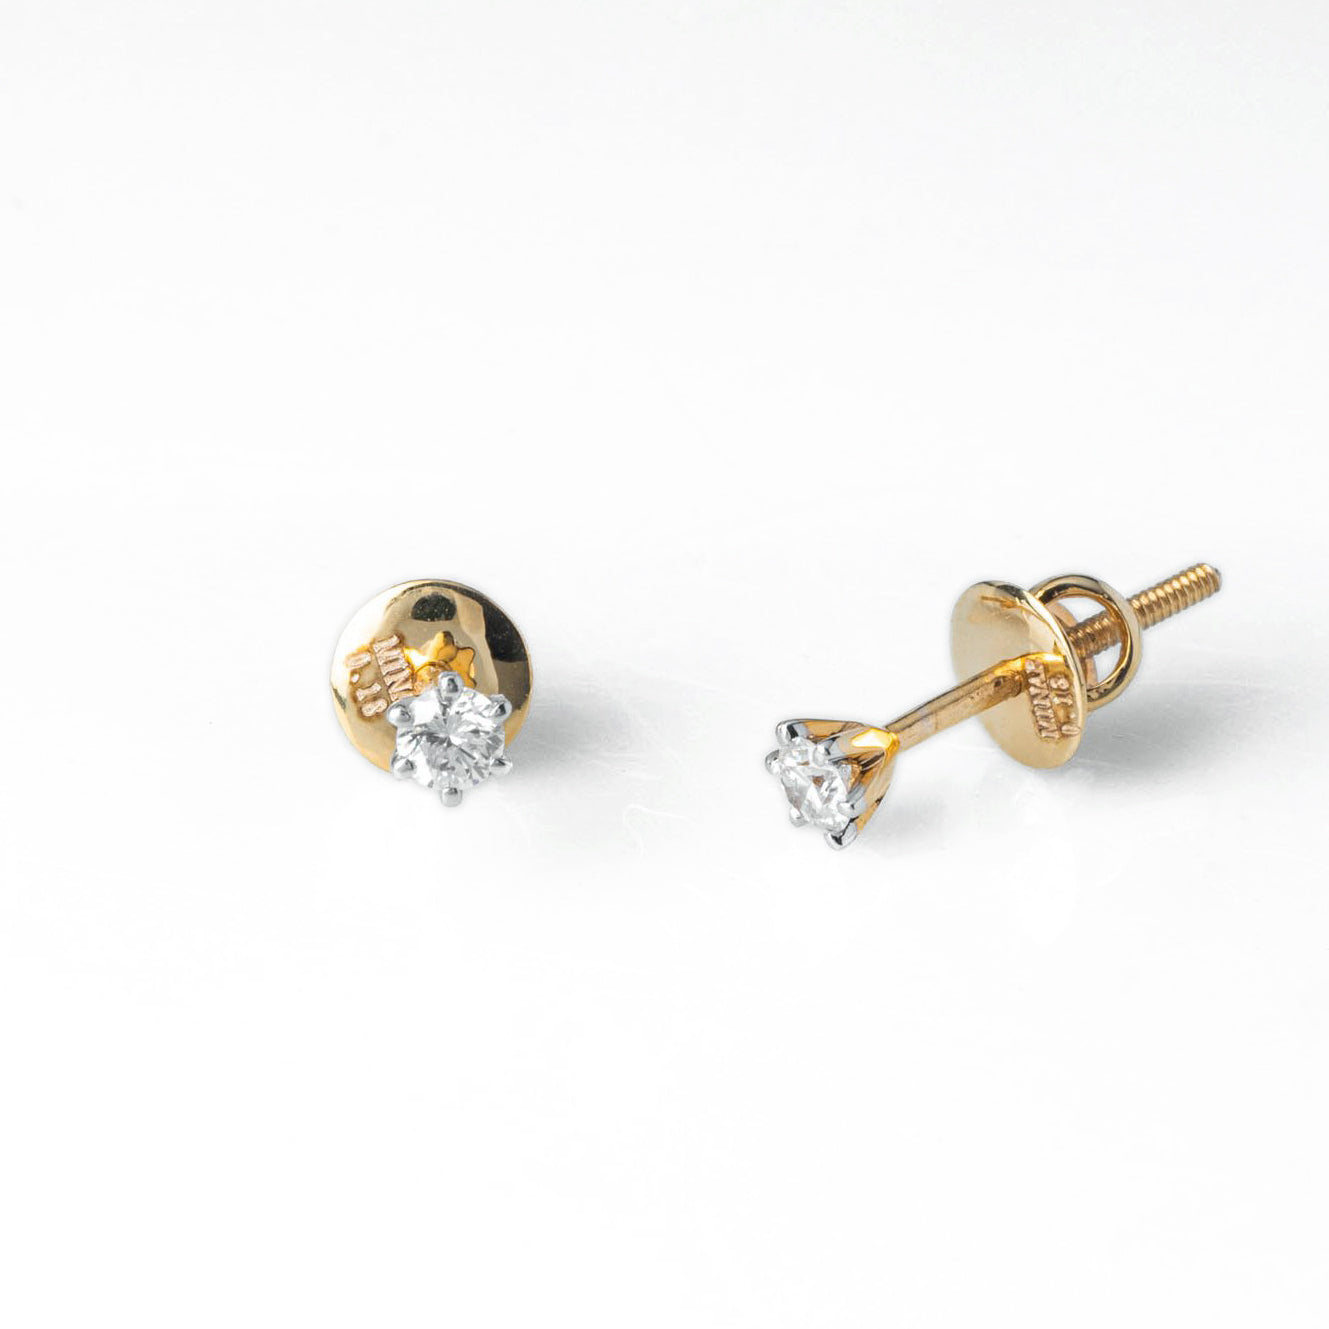 18ct Yellow Gold 0.18ct Round Brilliant Cut Diamond Stud Earrings (MCS3688)